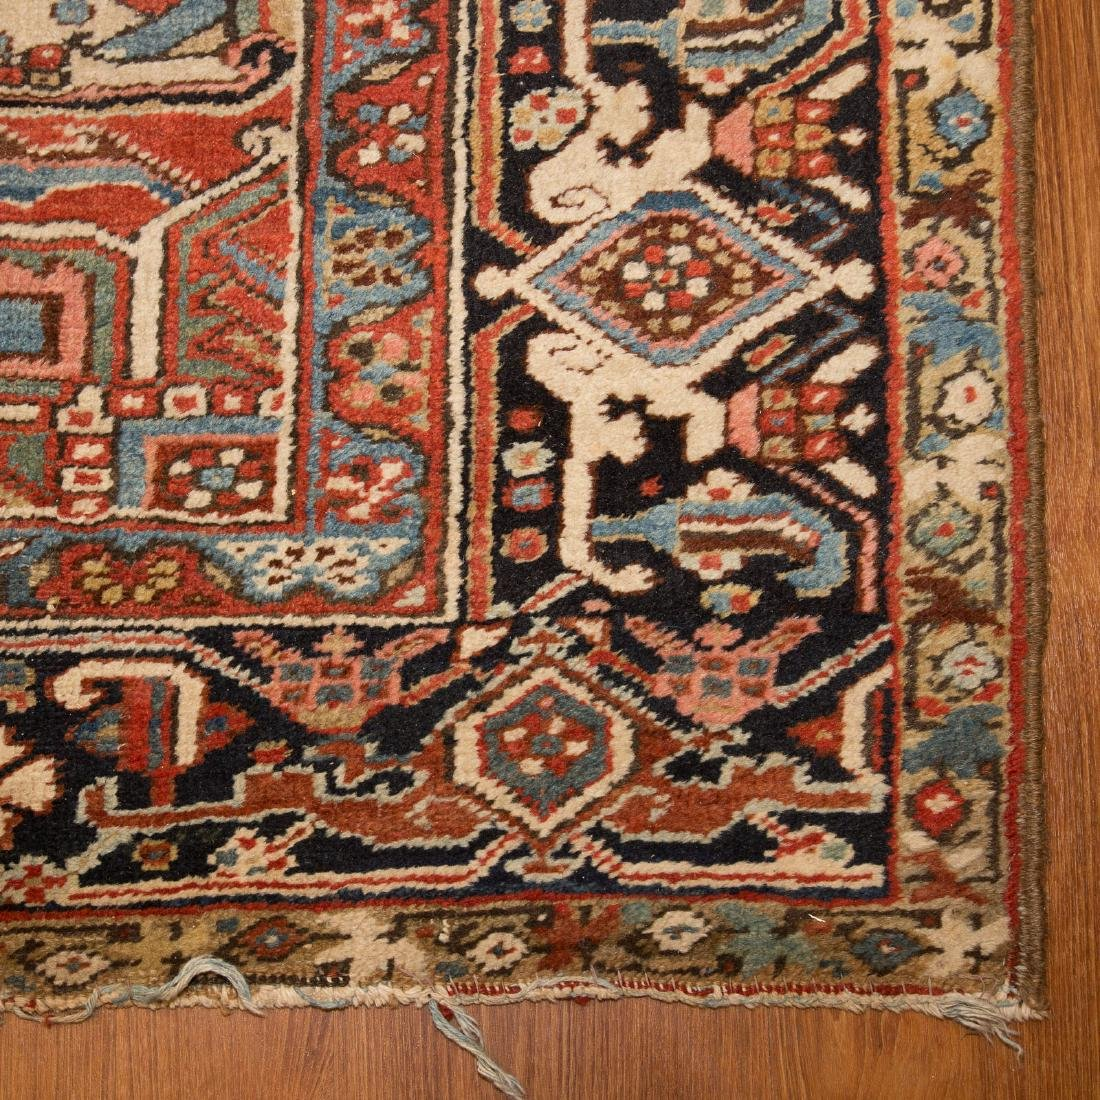 Persian Herez carpet, approx. 8.6 x 12.3 - 2